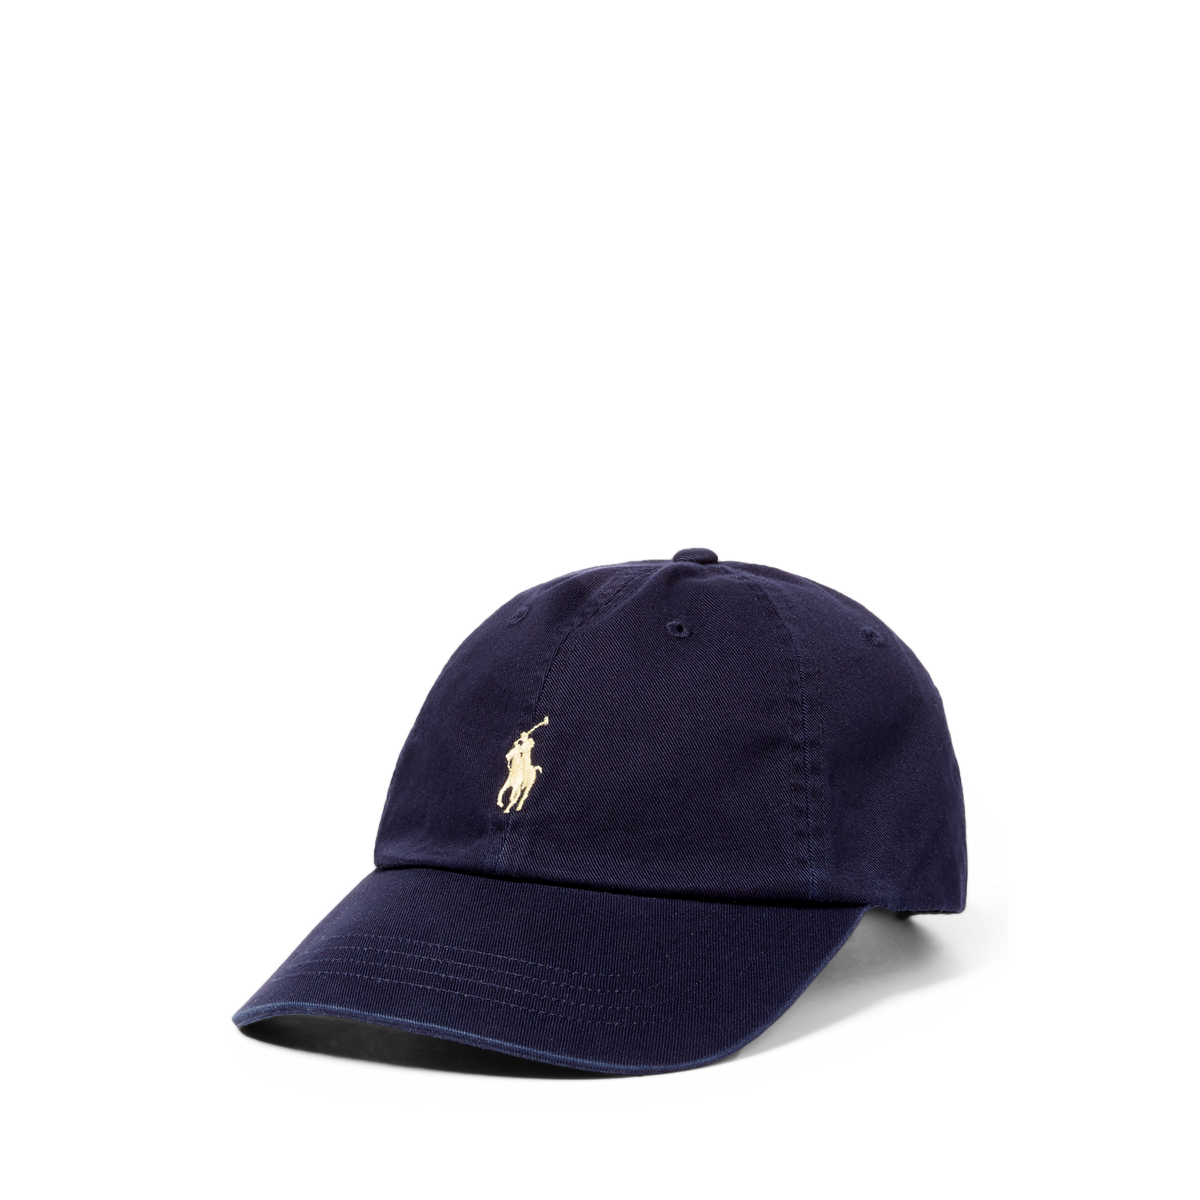 735667b82 Cotton Chino Baseball Cap